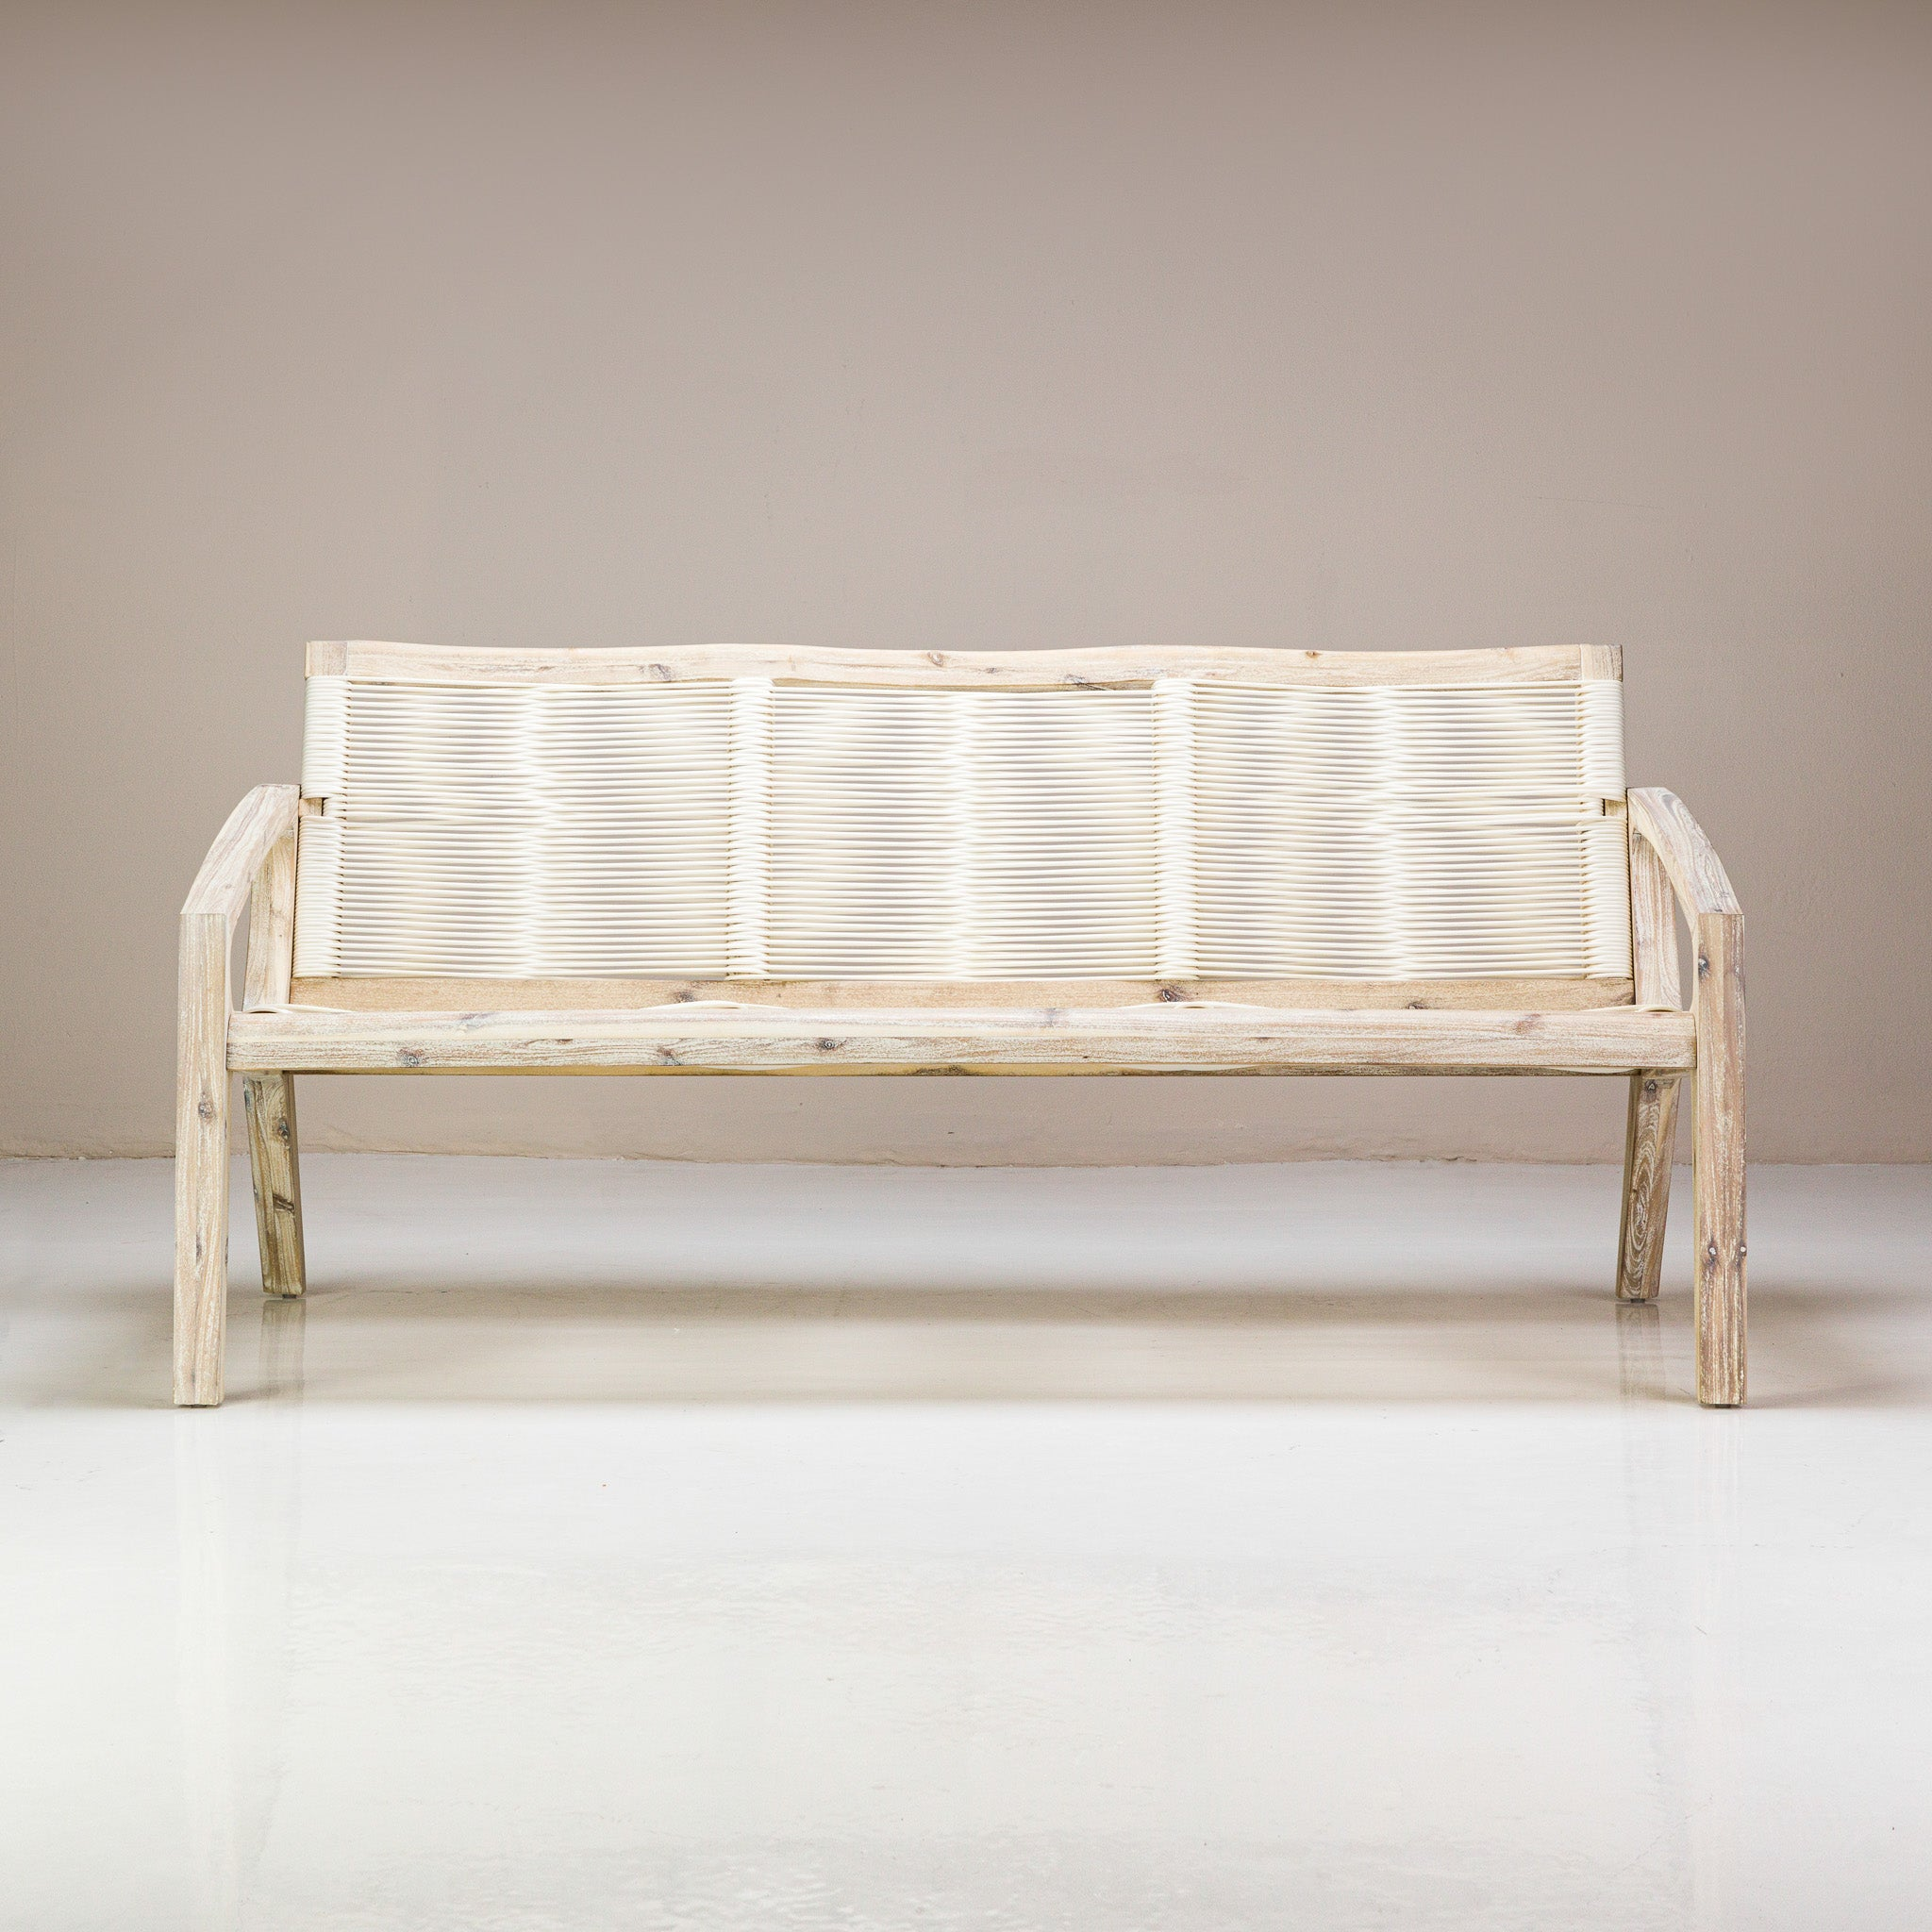 Matilda Sofa - Atmosphere Furniture